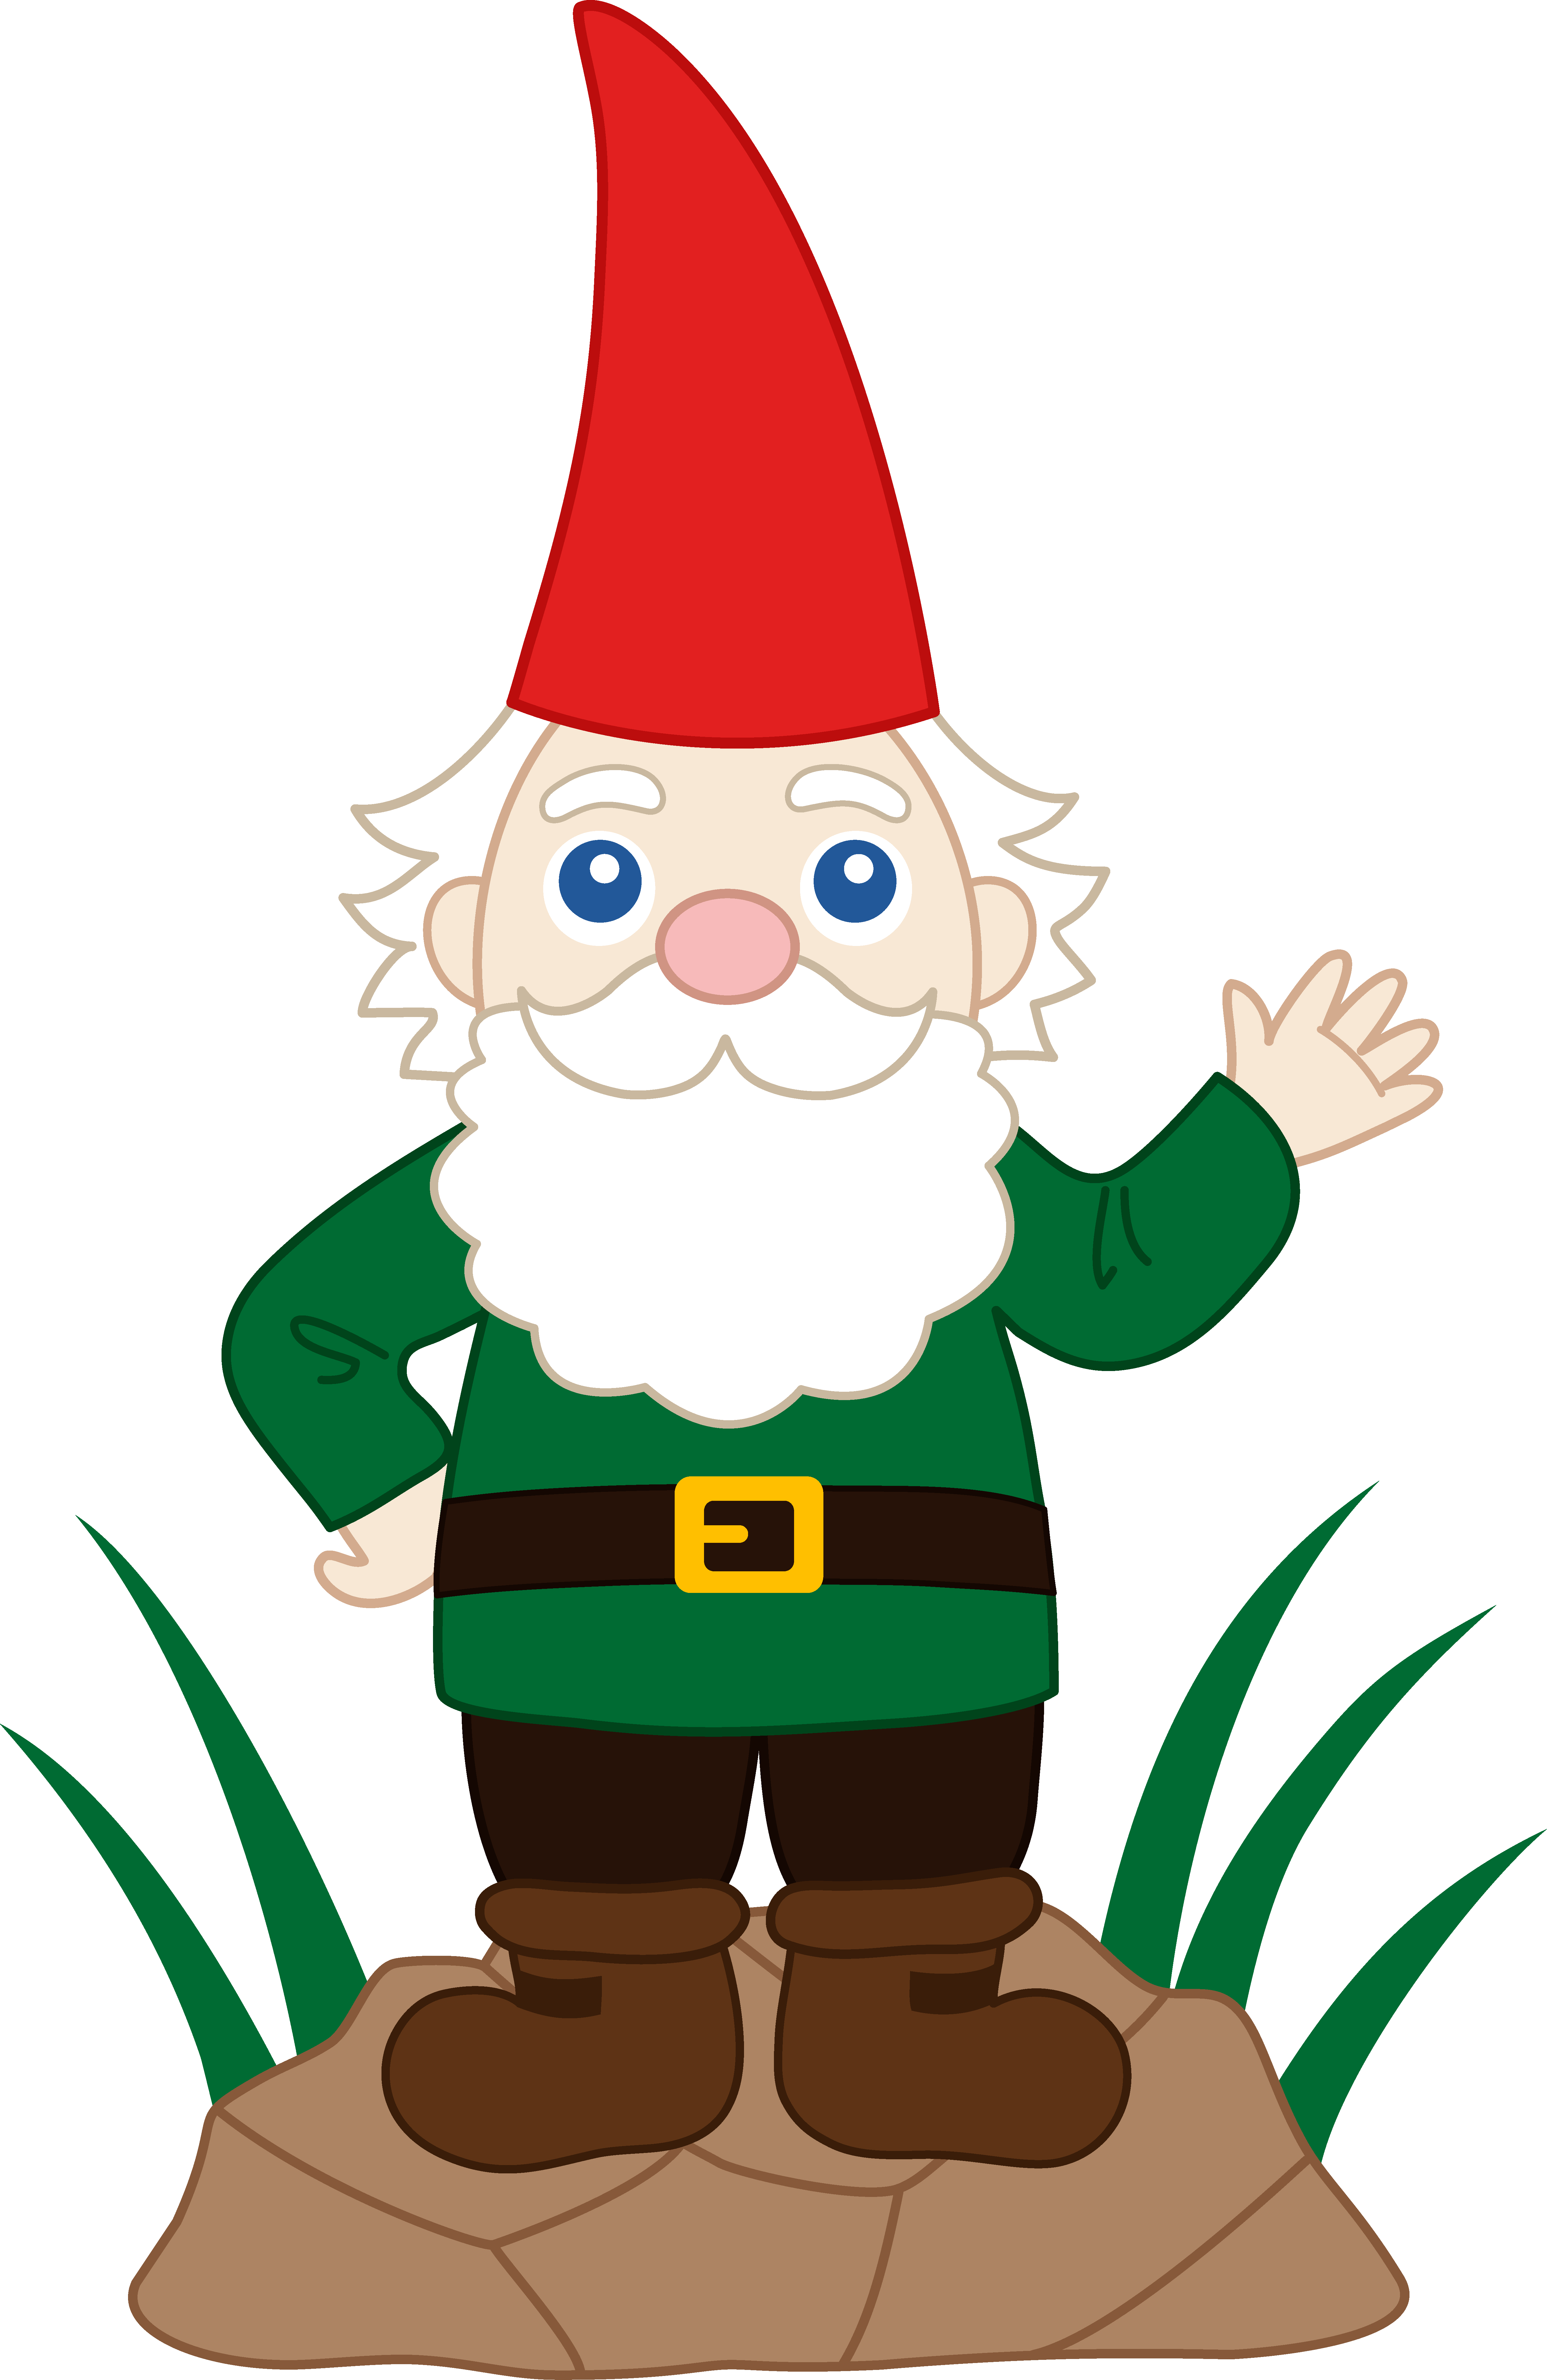 Free clipart gnomes clip art freeuse Friendly Garden Gnome - Free Clip Art clip art freeuse